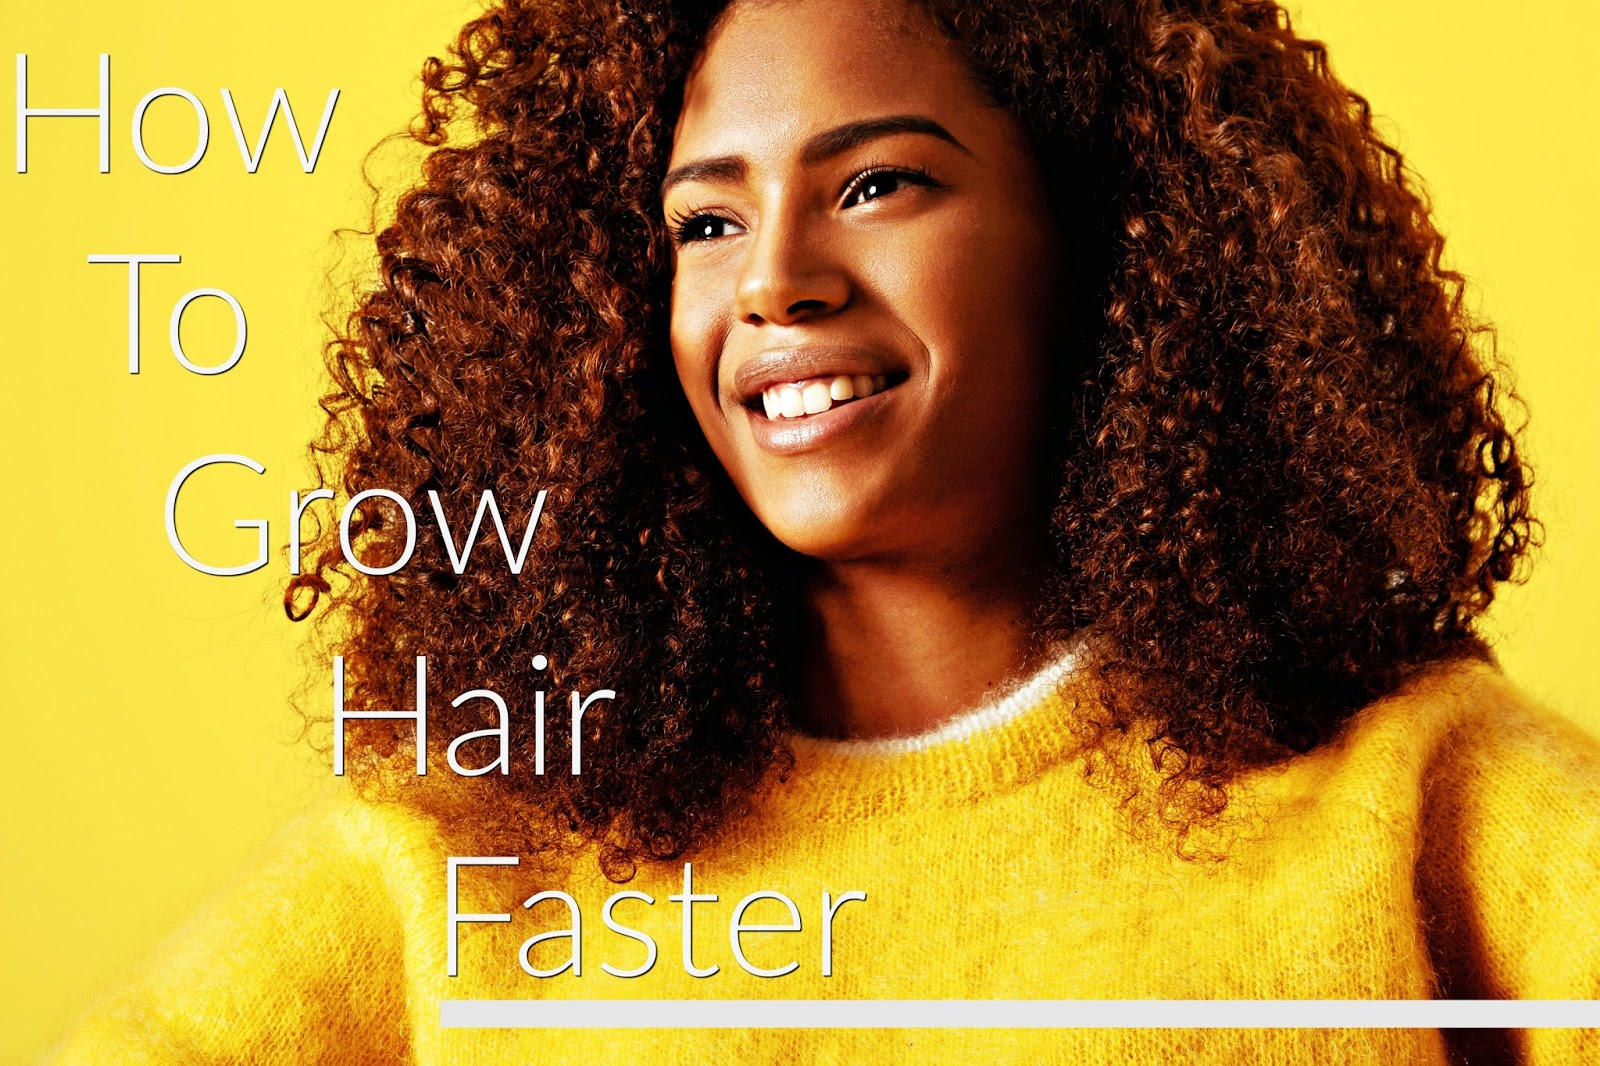 It's time to grow hair faster and healthier. We've got the top tips to use and the top don'ts to steer clear of! Make your hair growth journey positive!